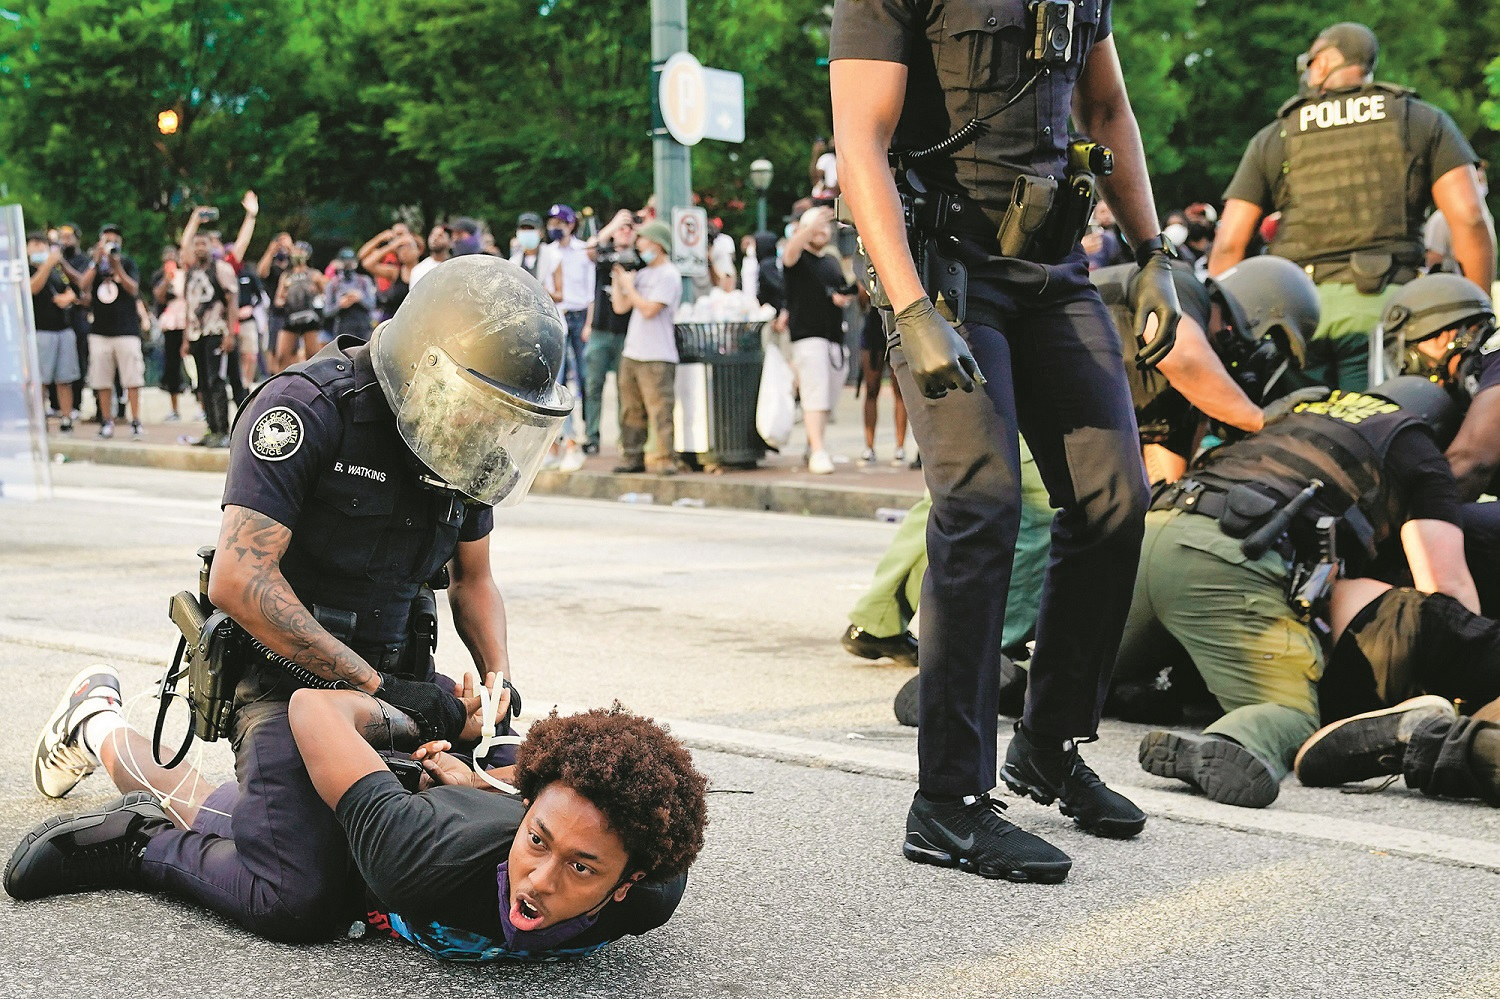 ATLANTA, GA - MAY 30: Police detain demonstrators for being in the street during a protest in response to the police killing of George Floyd on May 30, 2020 in Atlanta, Georgia. Across the country, protests have erupted following the recent death of George Floyd while in police custody in Minneapolis, Minnesota in the most recent in a series of deaths of black Americans by the police.   Elijah Nouvelage/Getty Images/AFP == FOR NEWSPAPERS, INTERNET, TELCOS & TELEVISION USE ONLY ==